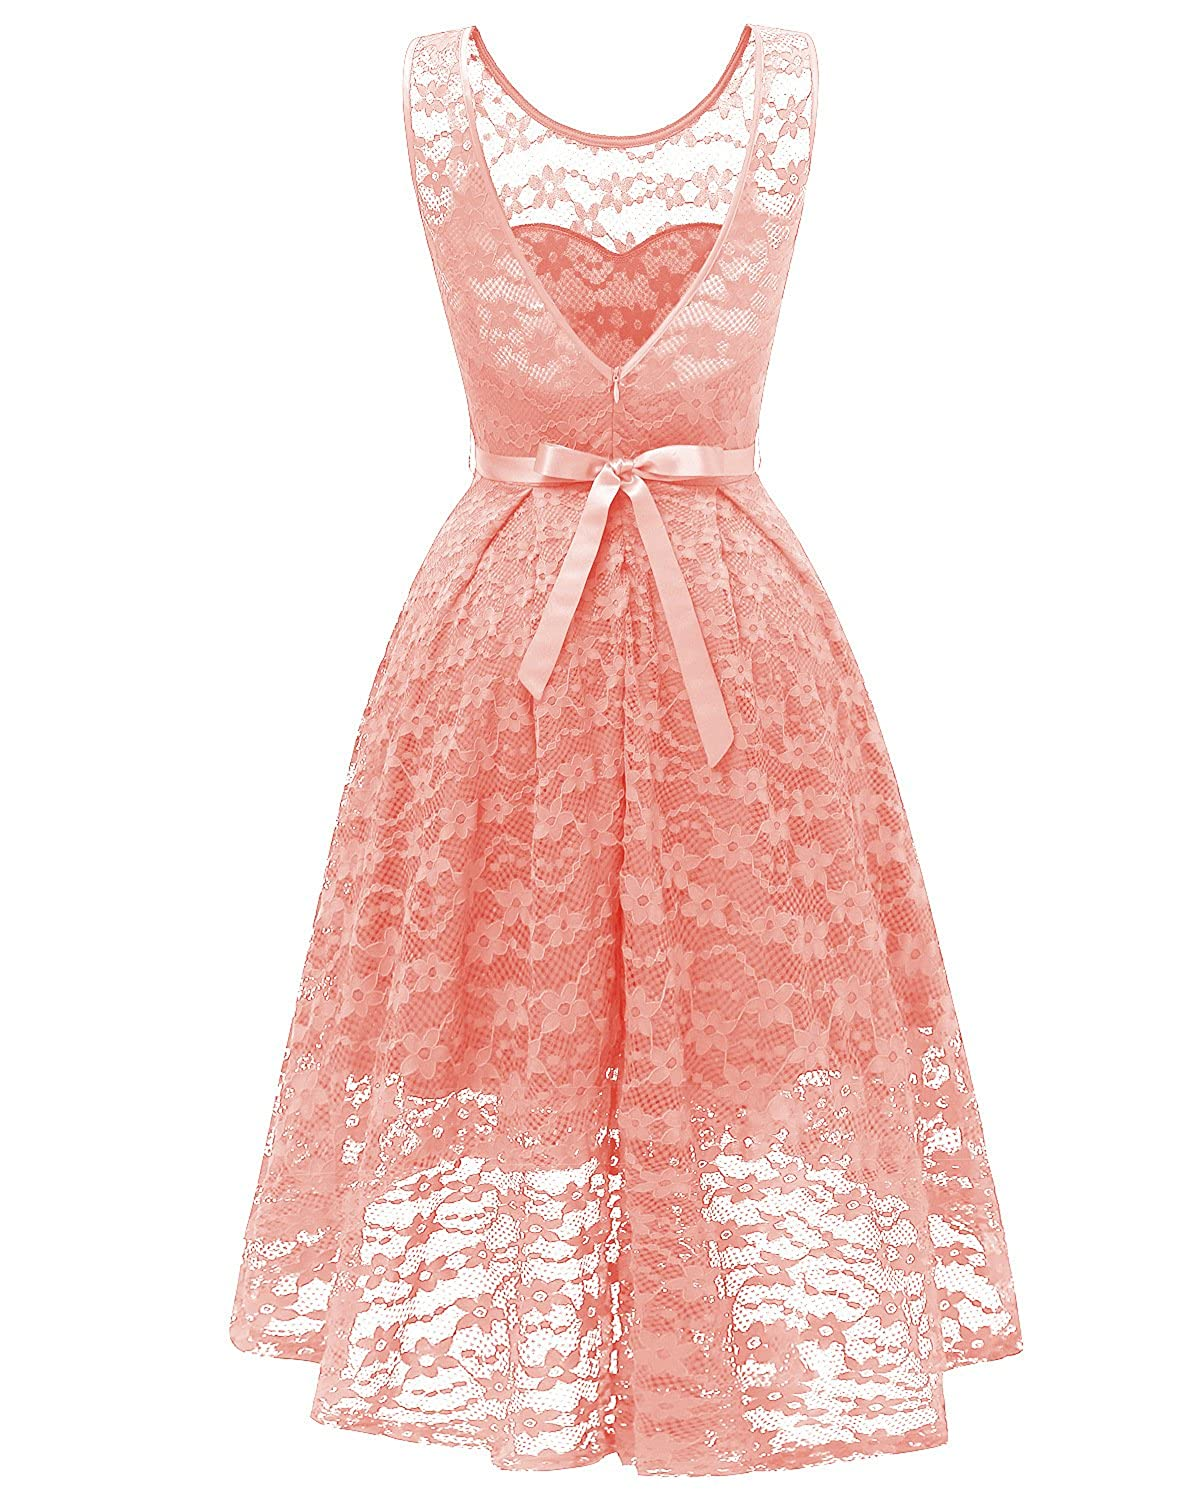 Womens Vintage 1950s A line High Low Flared Lace Swing Party Cocktail Midi Dress